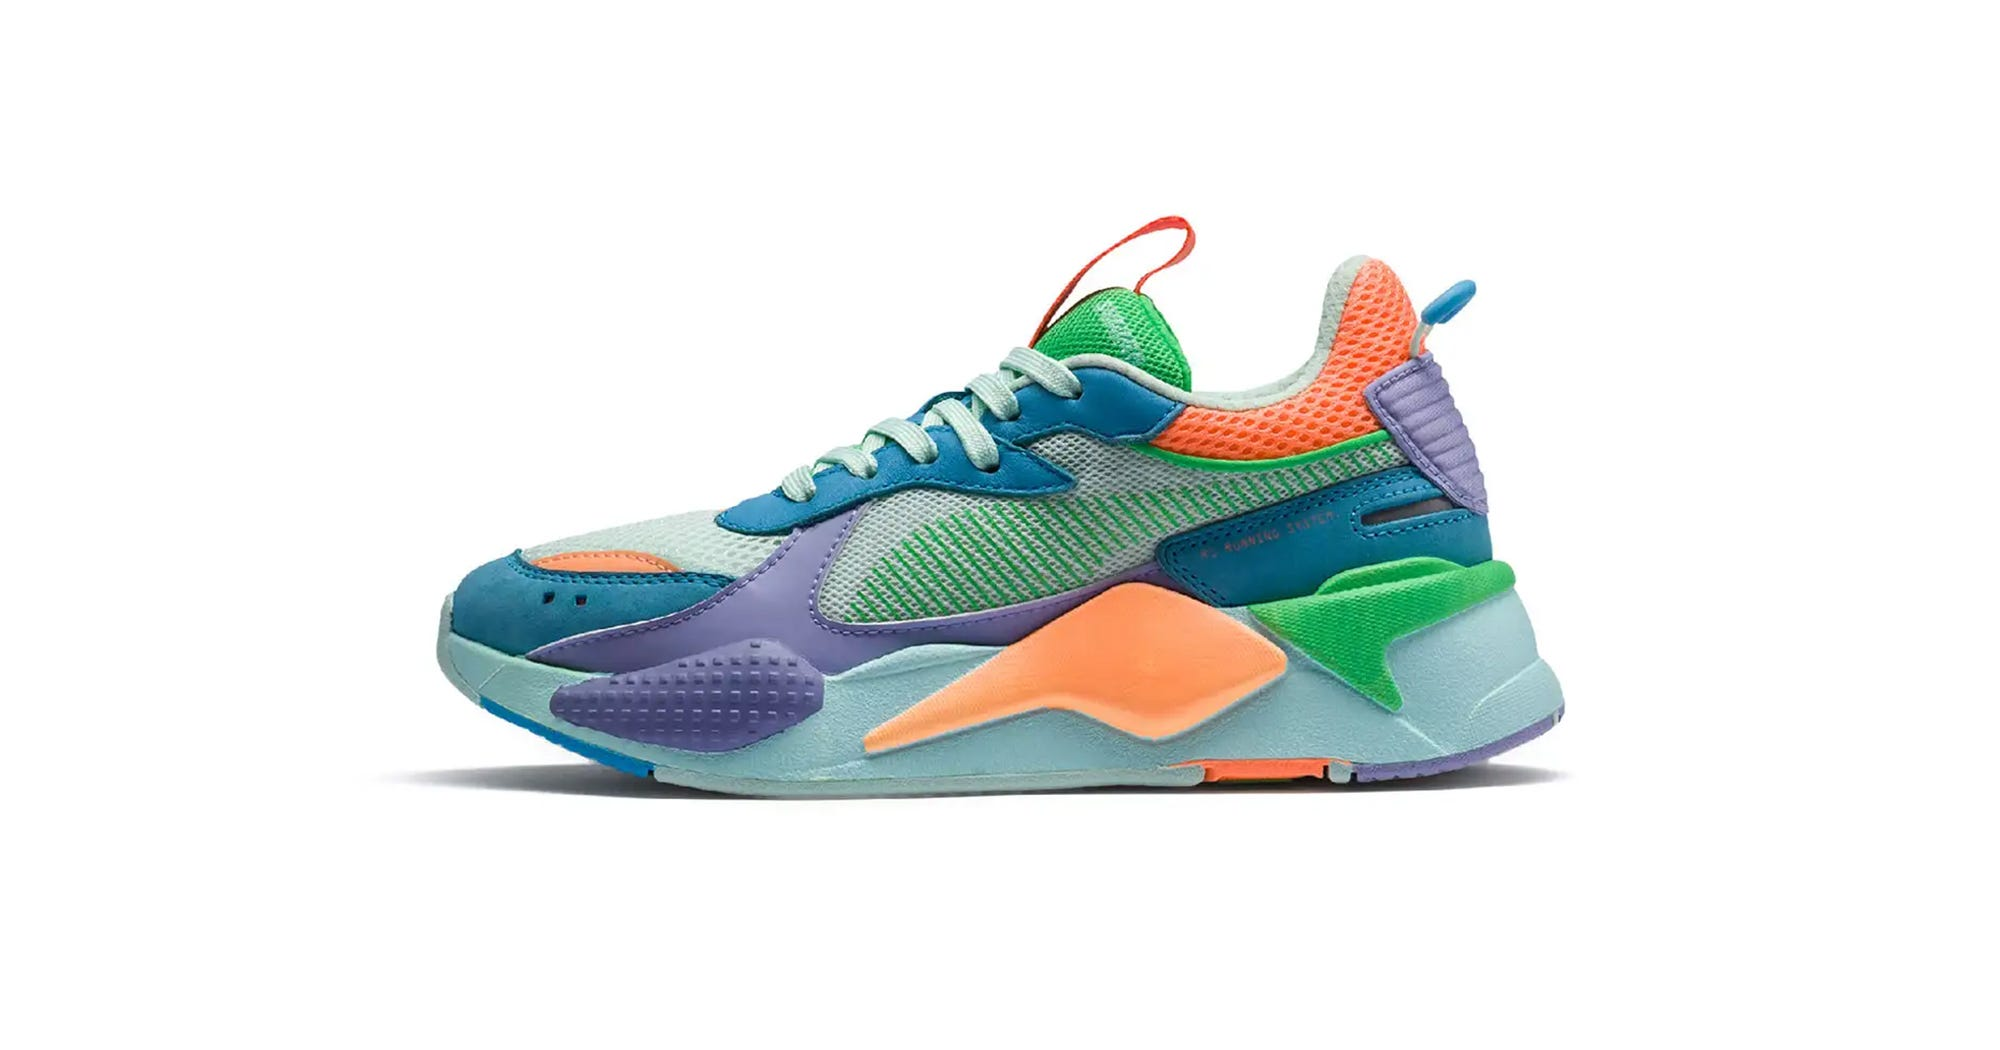 Bright-Color Sneakers For Spring 2019